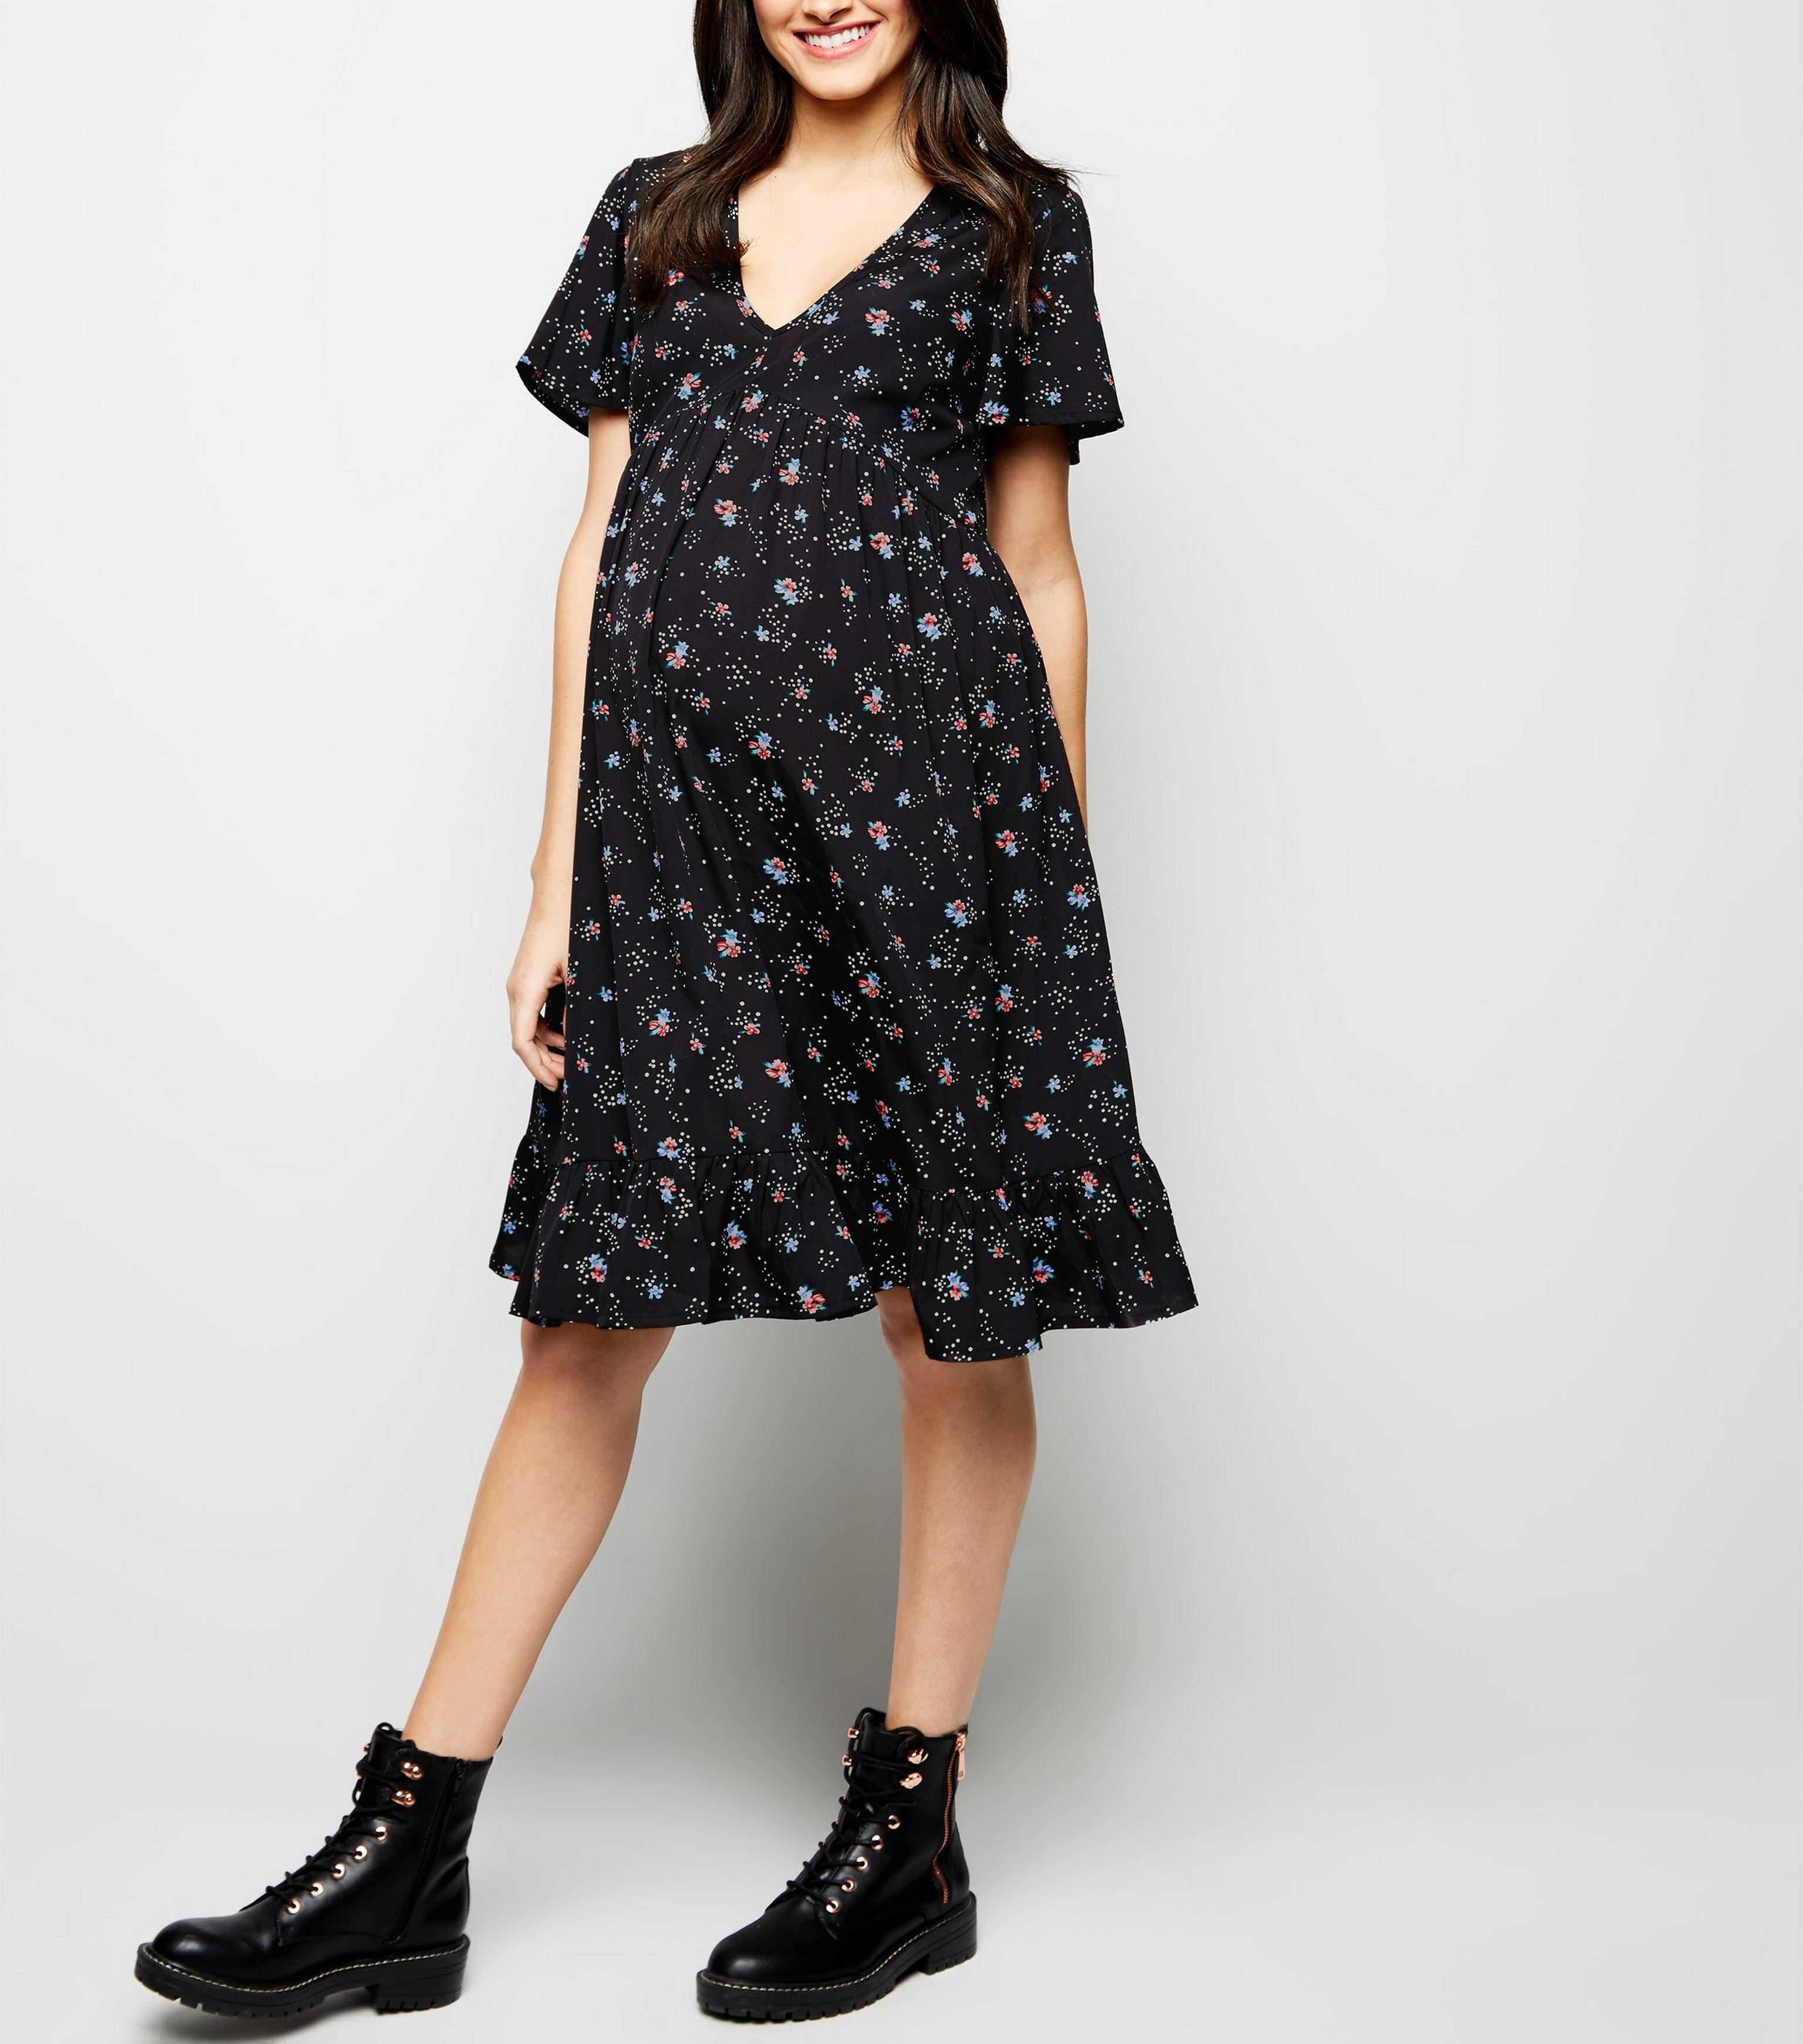 f03486fe67 New Look Maternity Black Floral Print Smock Dress in Black - Lyst